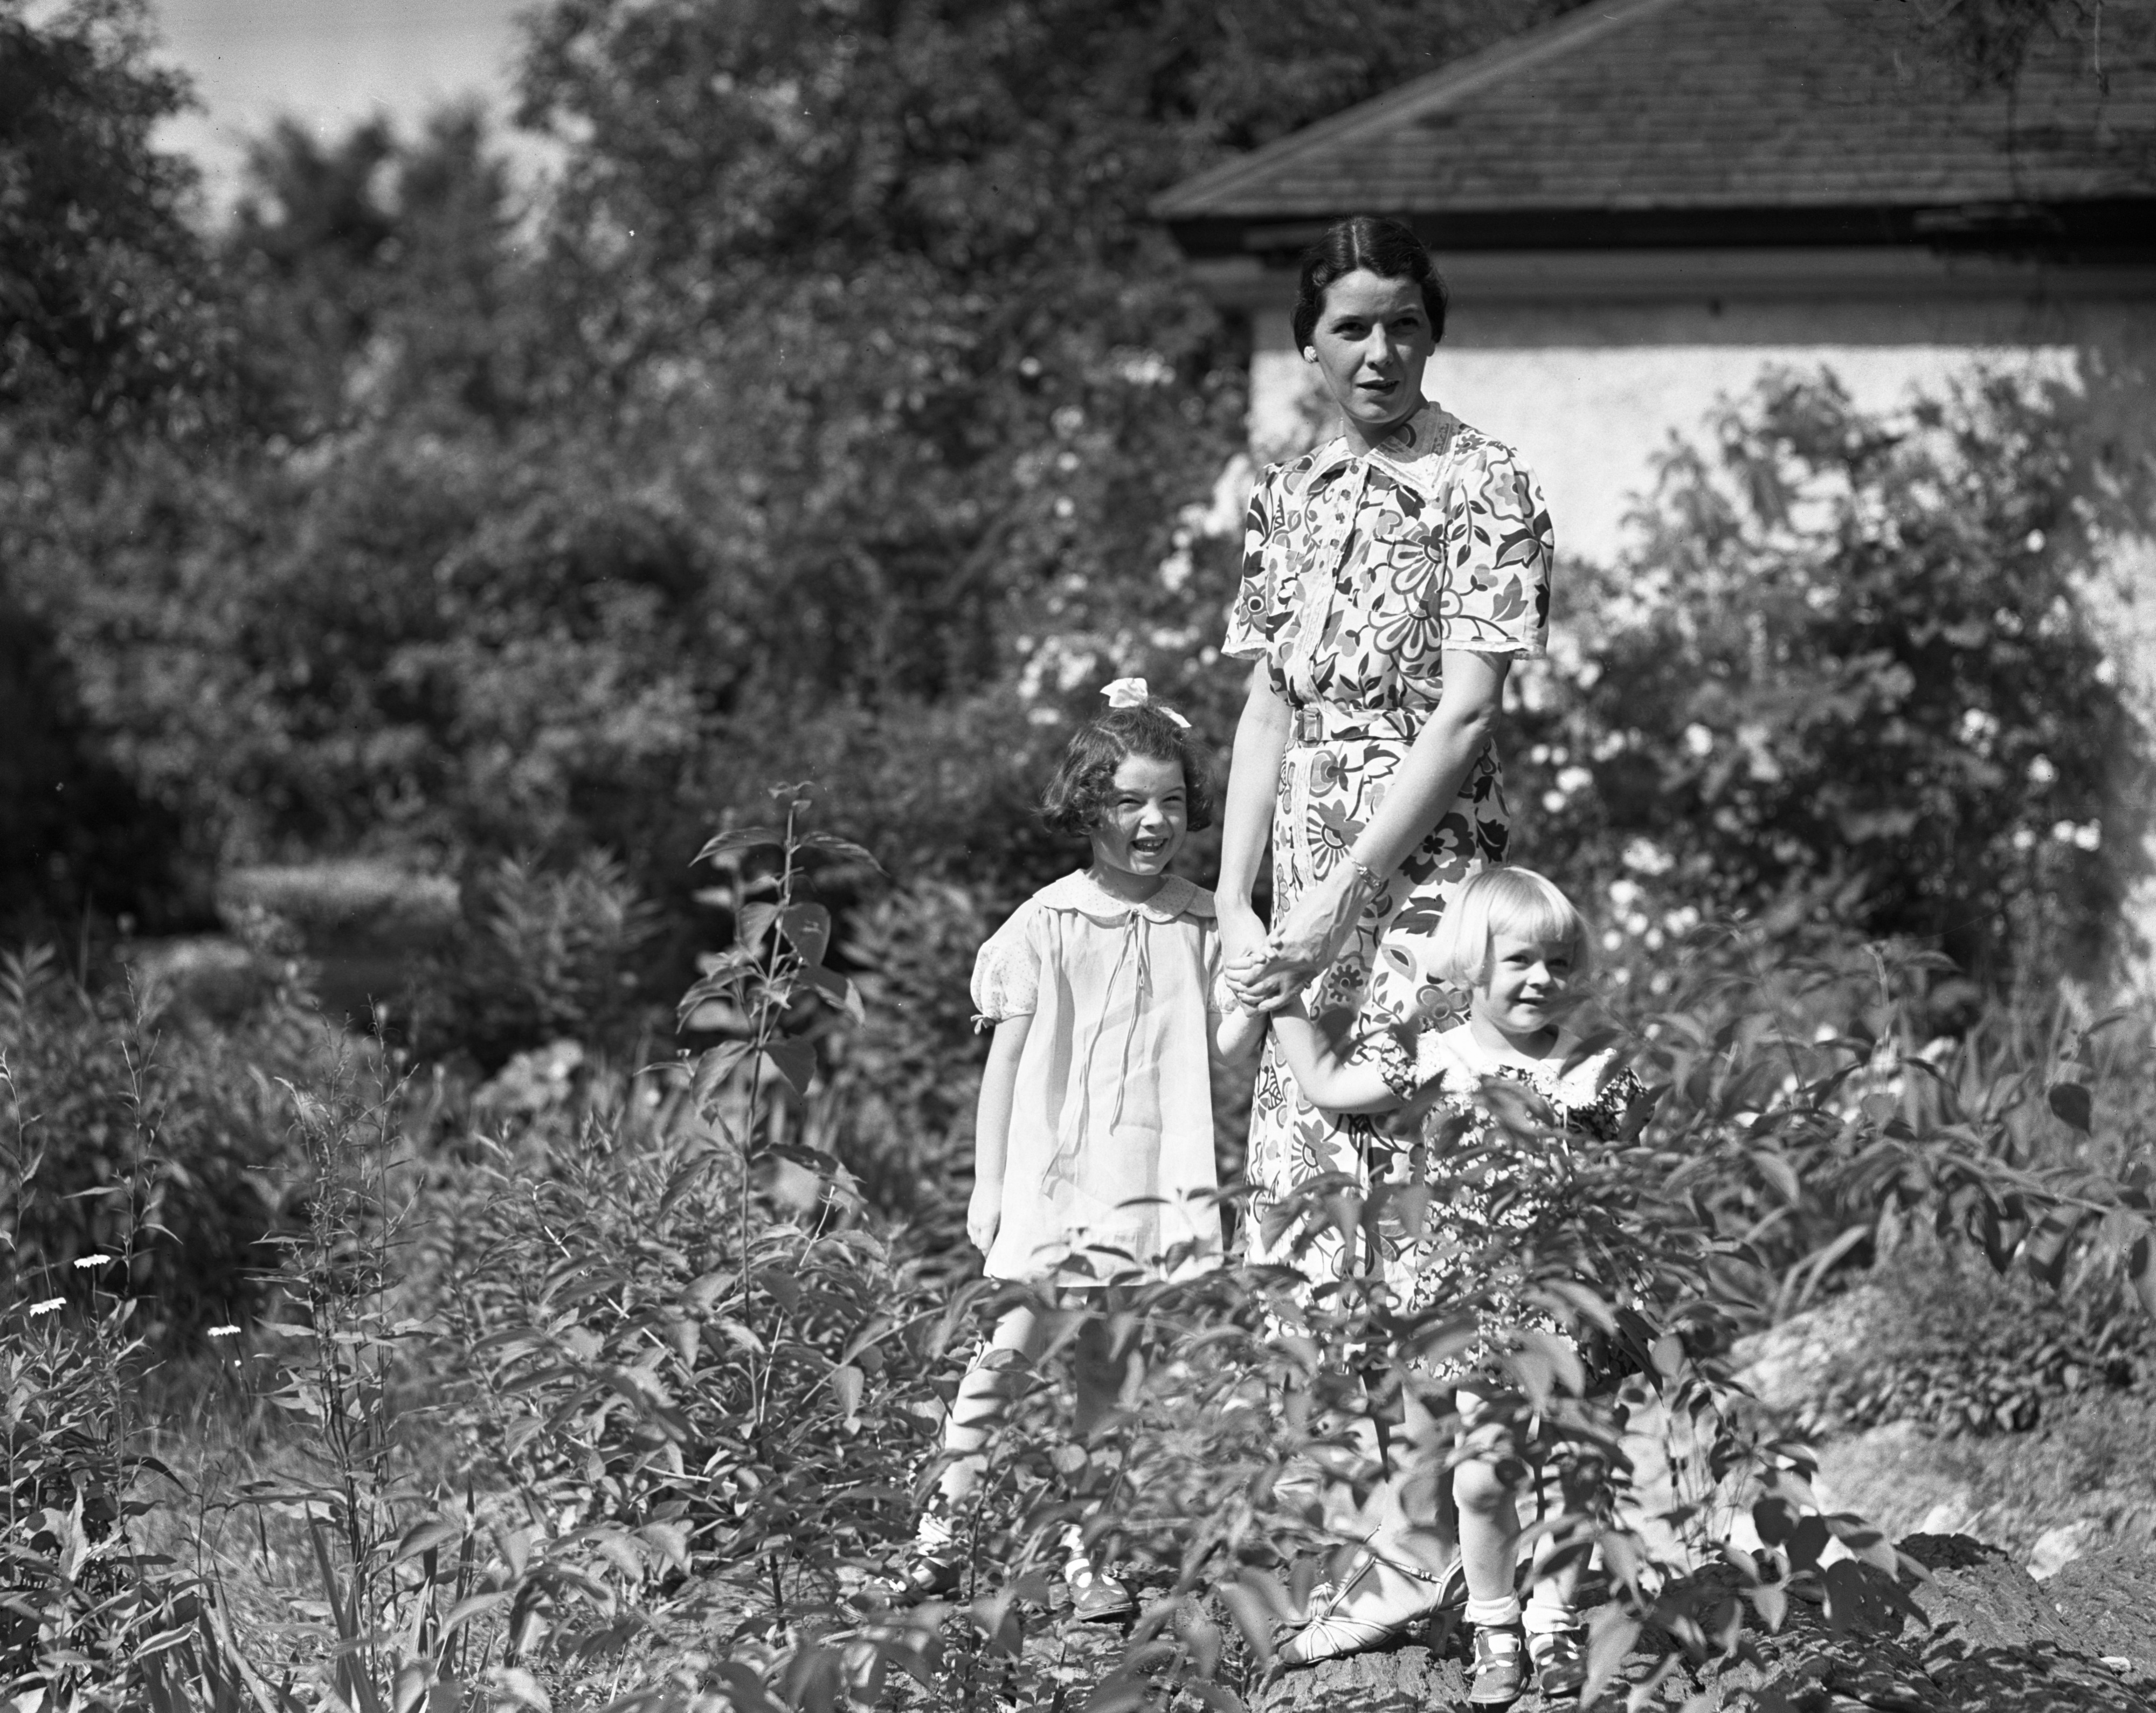 Mrs. Paul Sellards and children, of Australia, June 1937 image